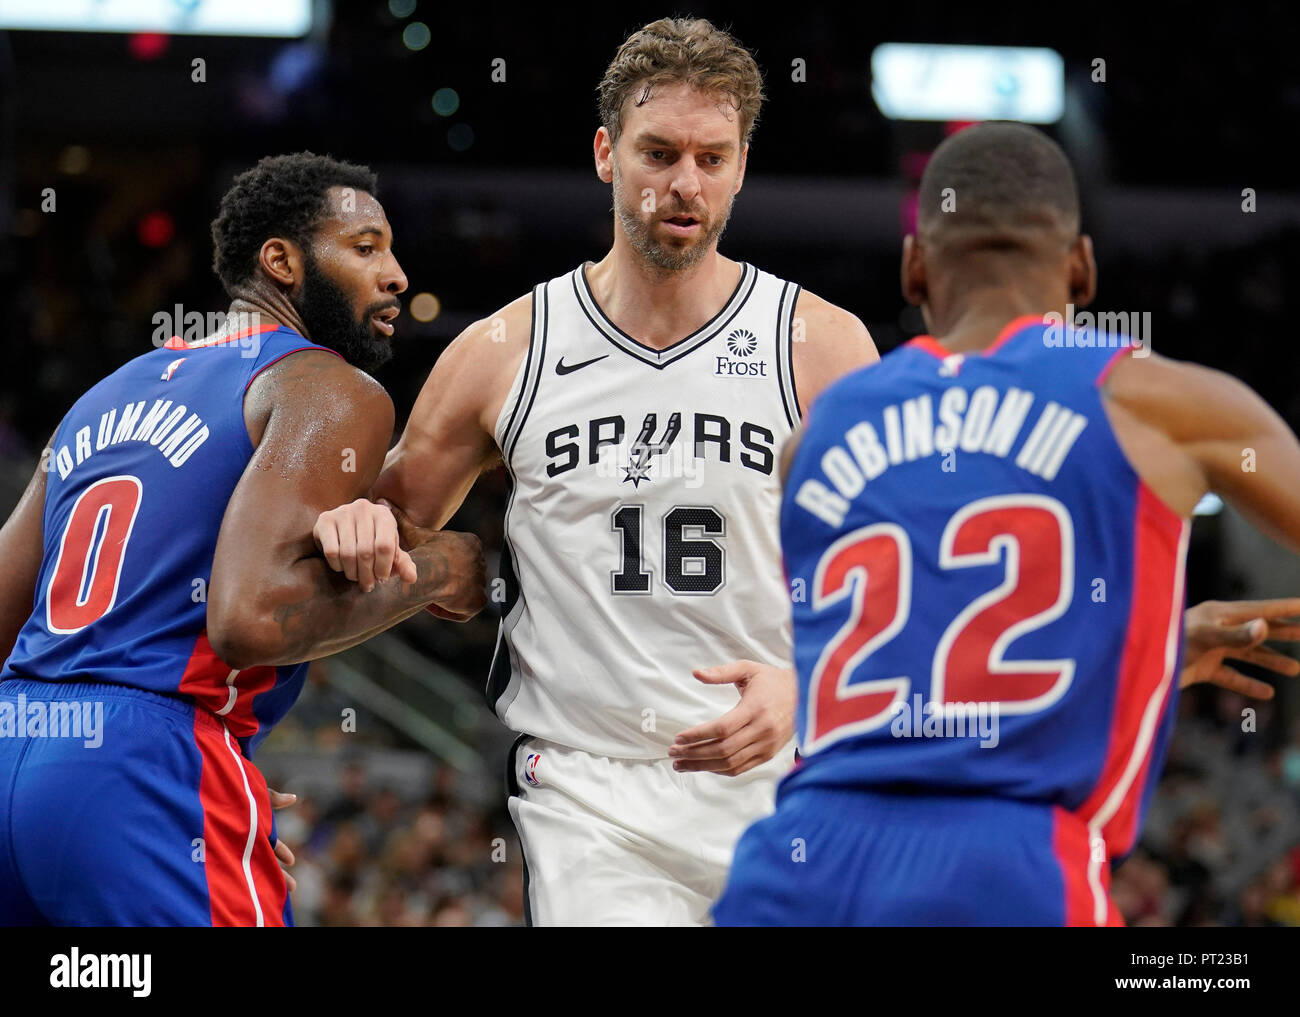 San Antonio,USA. 06th Oct, 2018. Pau Gasol (C) of the San Antonio Spurs in action against Glen Robinson III (R) and Andre Drummond (L) of the Detroit Pistons during their NBA preseason basketball game, in San Antonio, Texas, USA, 05 October 2018. Credit: William Abate/EFE/Alamy Live News Stock Photo